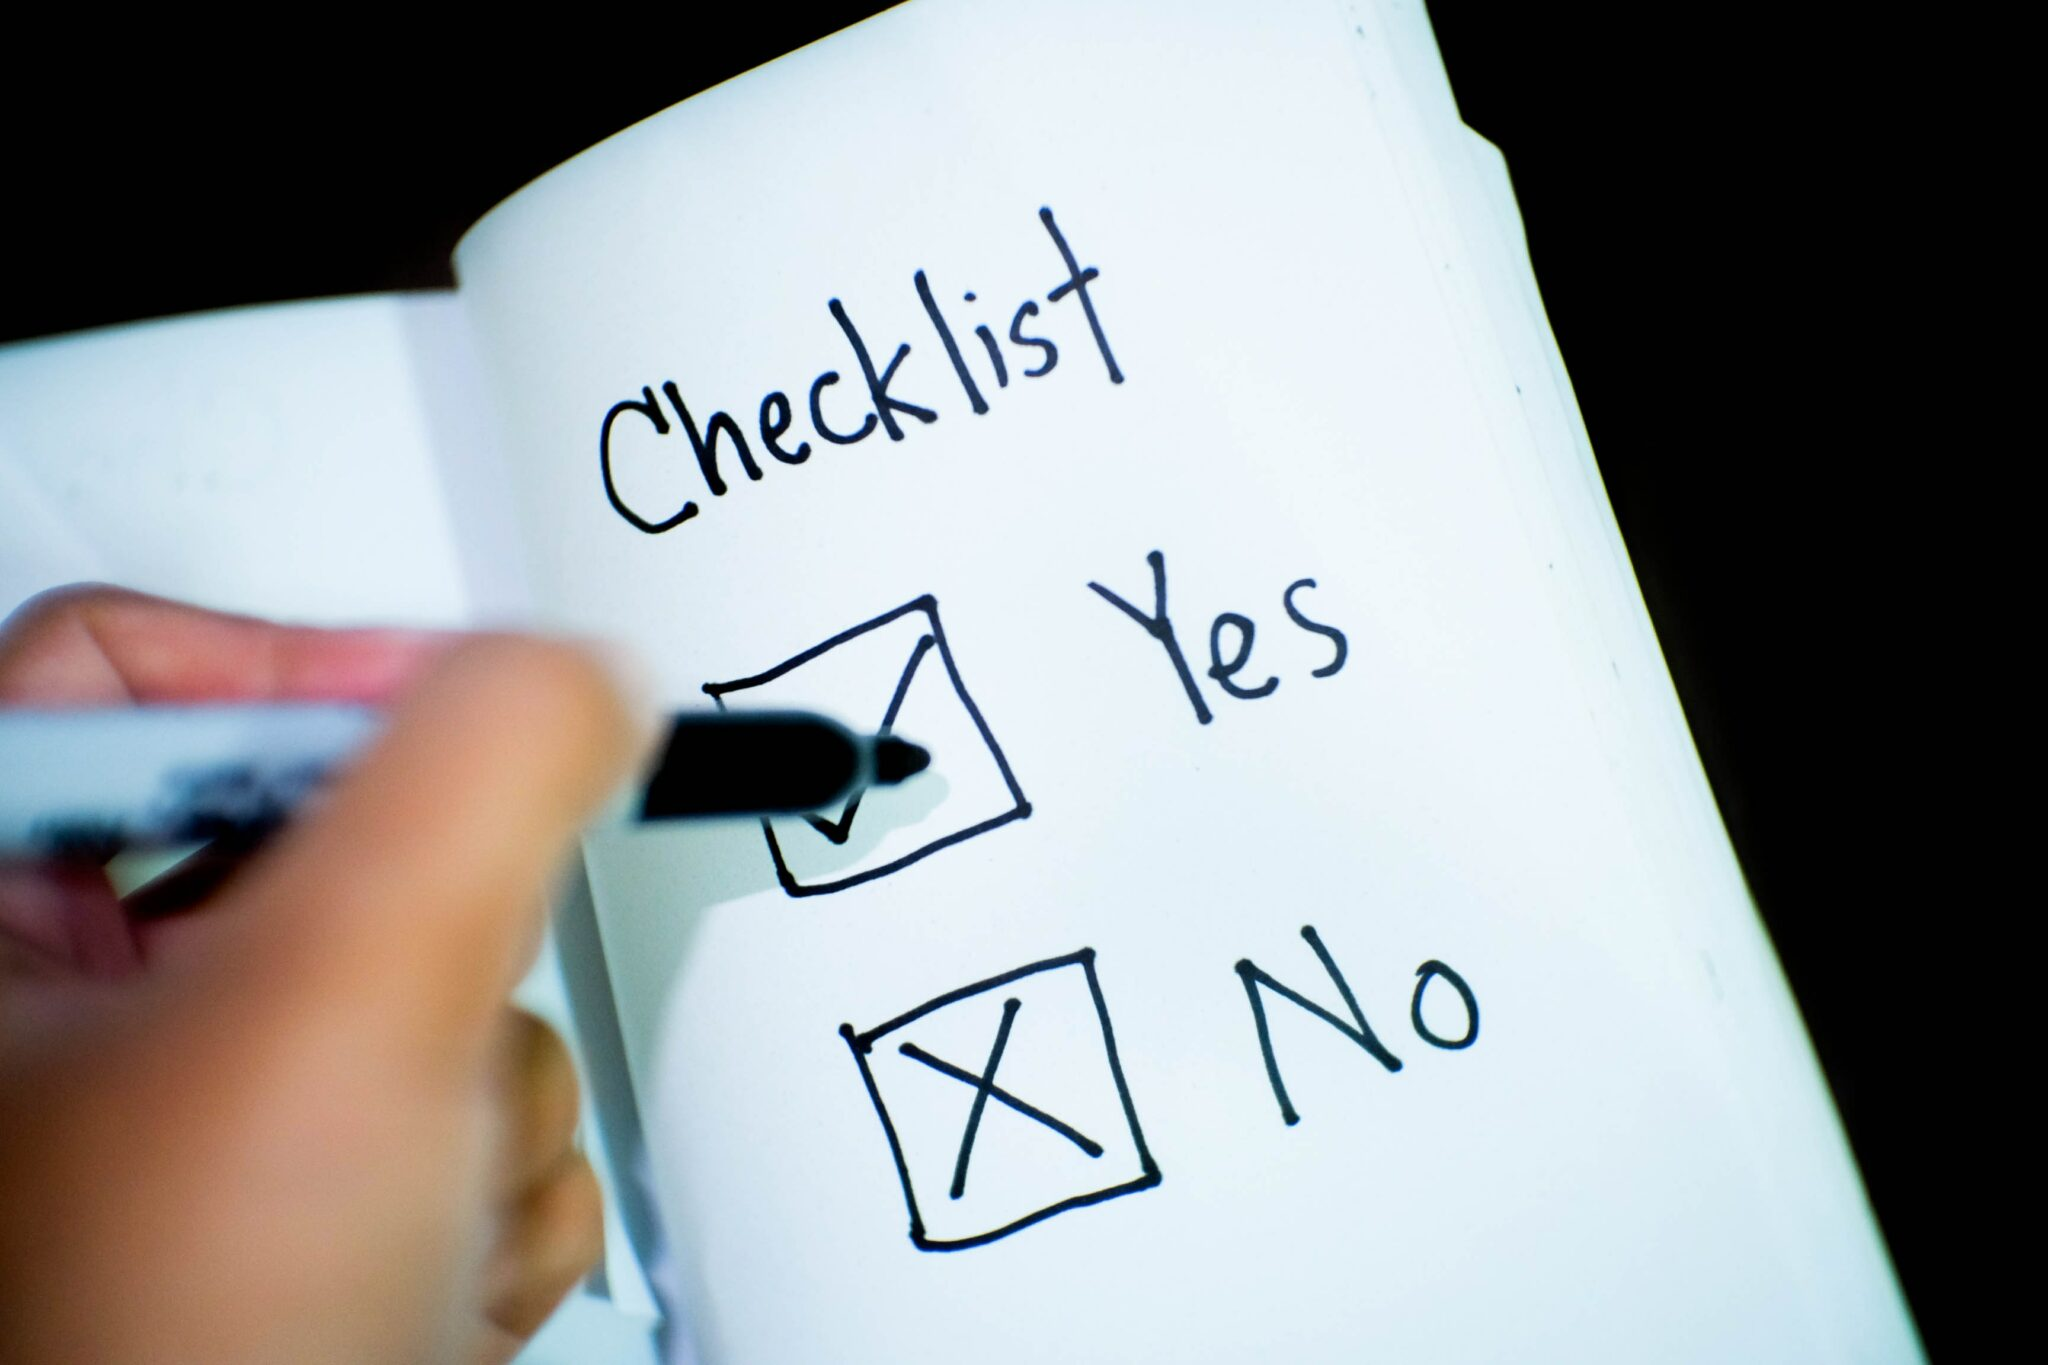 The Doctor Appointment Checklist